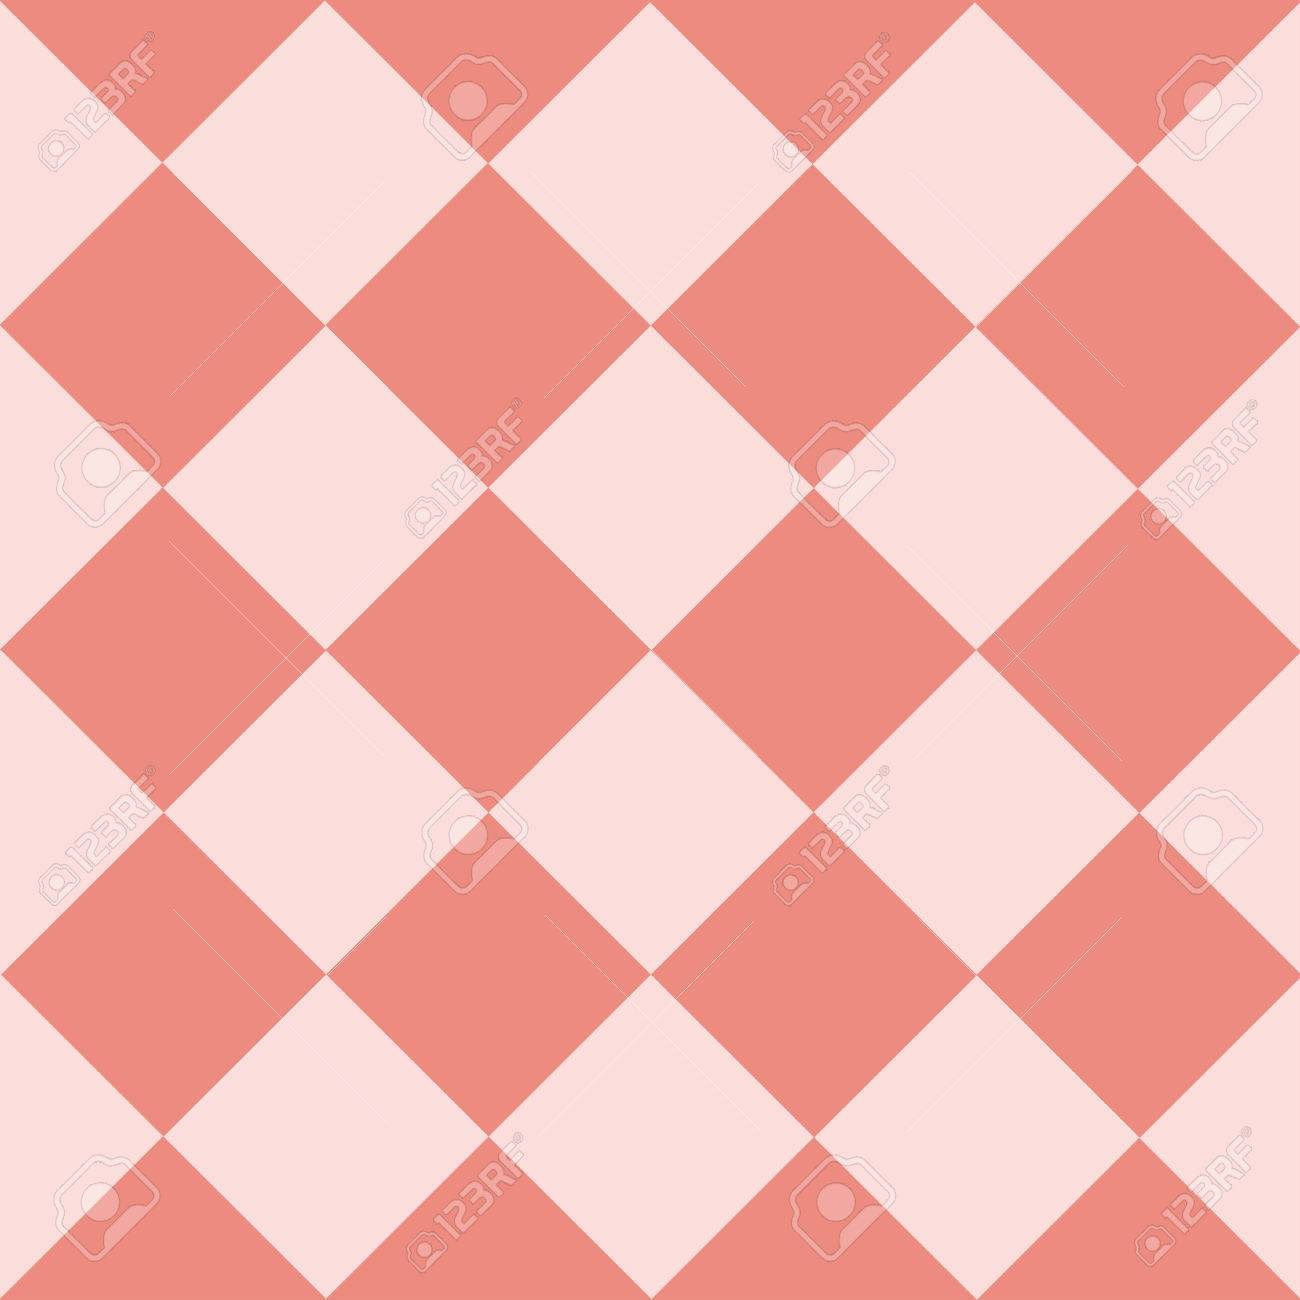 Light Pink Coral Chess Board Diamond Background Vector Illustration